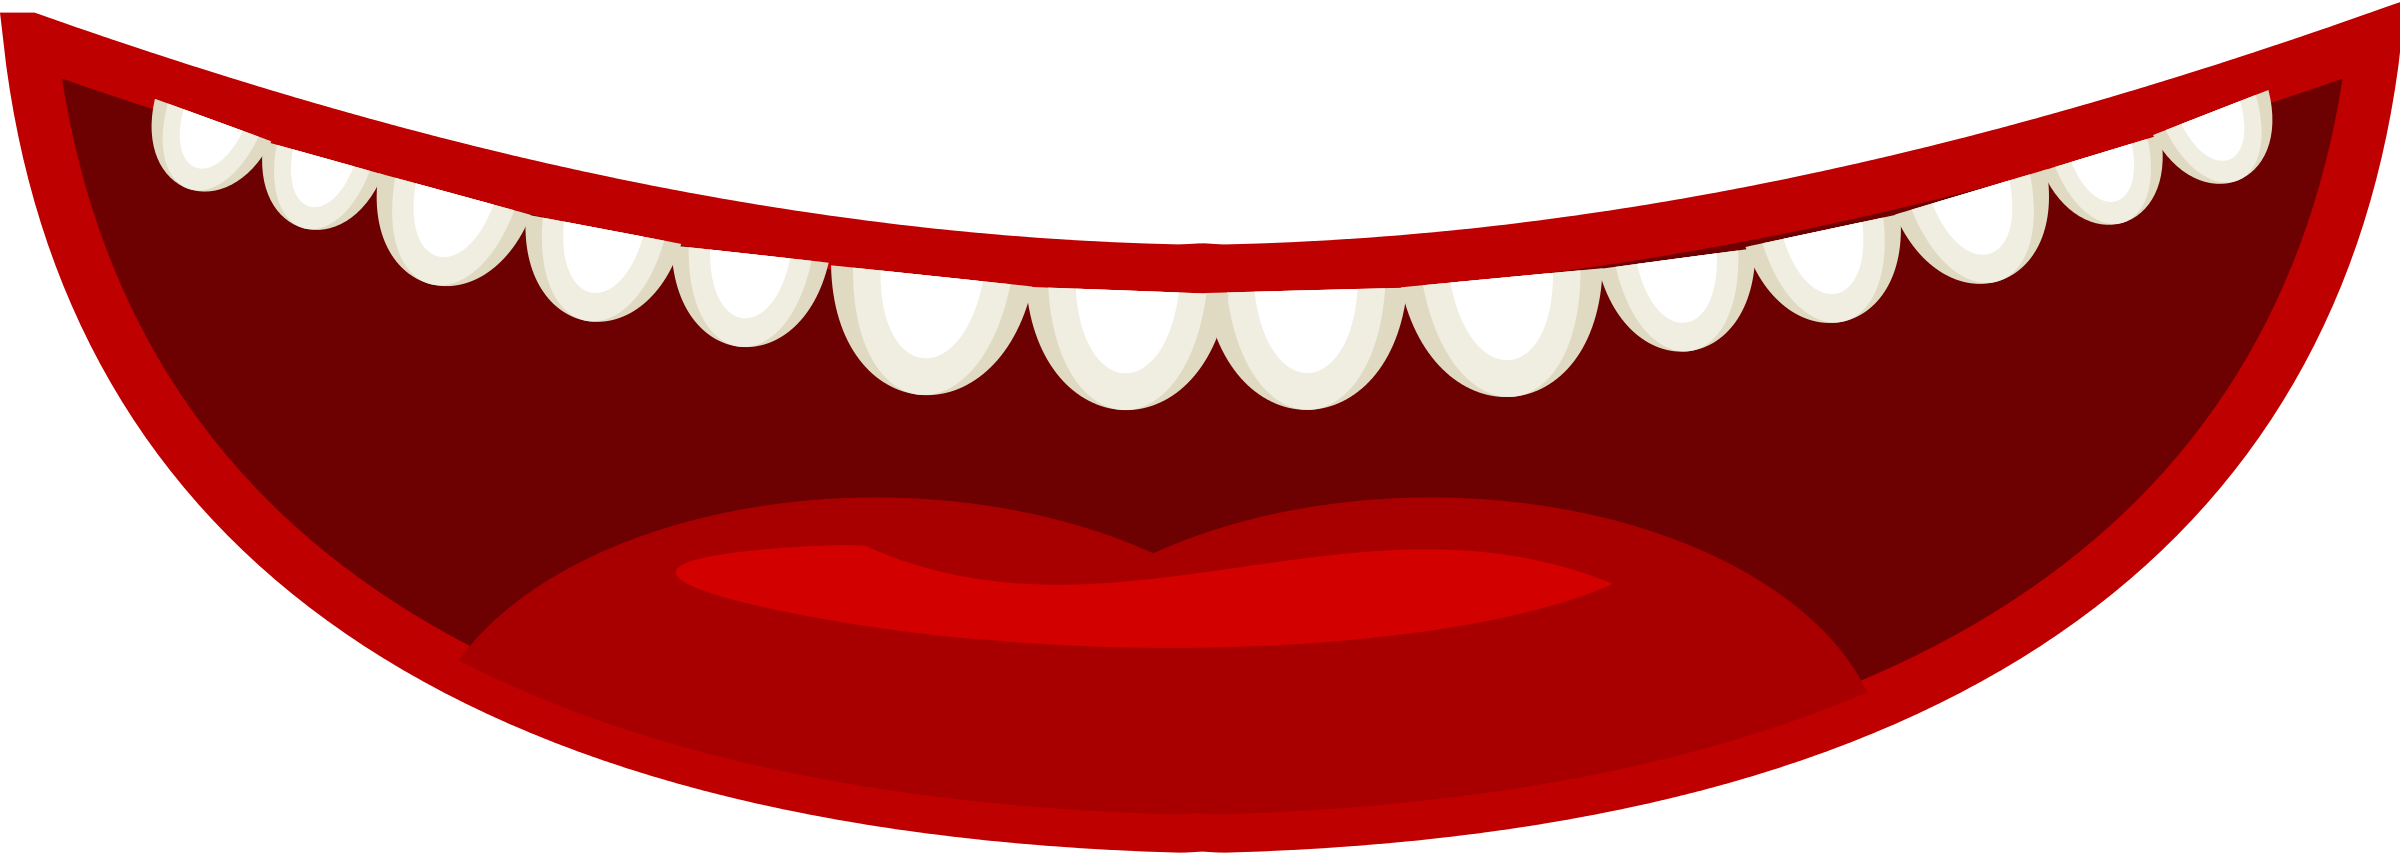 Smile teeth clipart 3